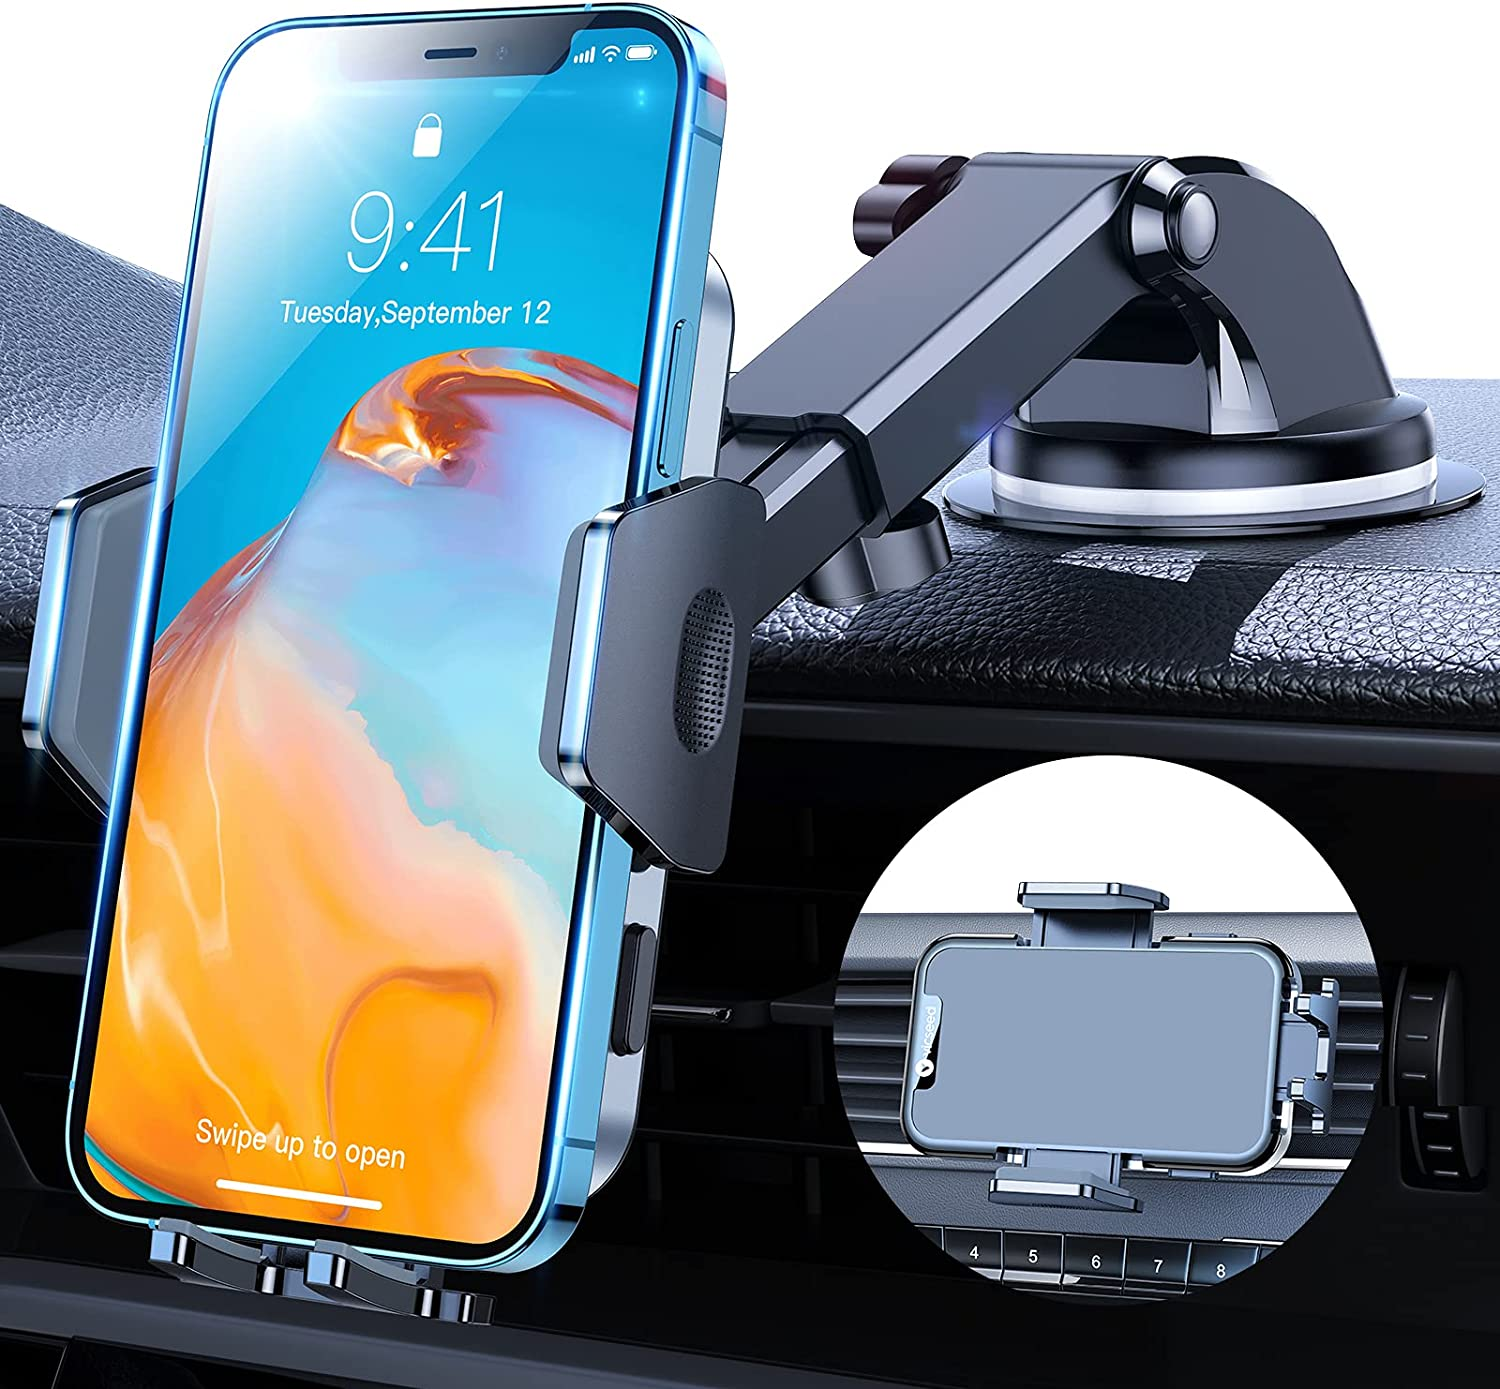 VICSEED Car Phone Holder Mount[ Super Powerful Suction Cup ] Hands Free Cell Phone Holder for Cars Rotatable Universal Dashboard Windshield Air Vent Vehicle Phone Mounts Compatible with All Phones